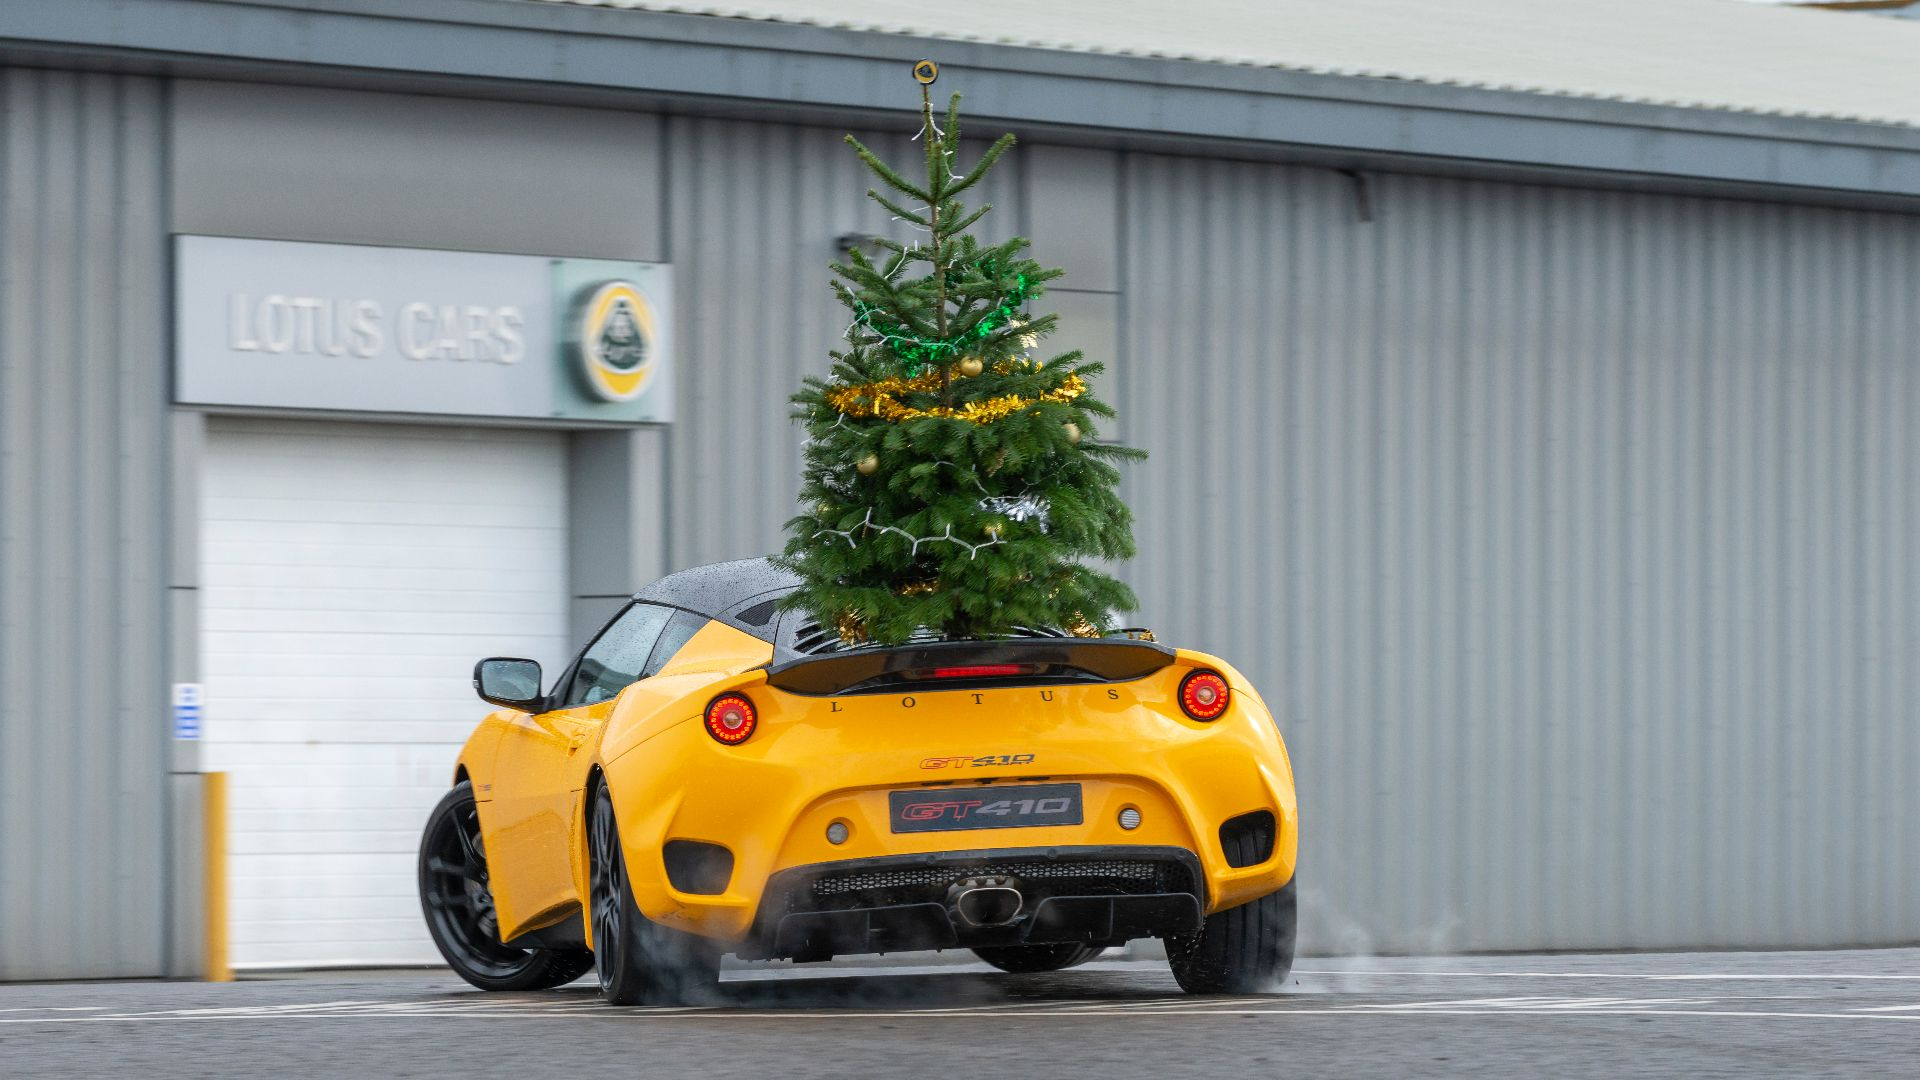 #DriftmasEvora Lotus GT410 Sport rear with Christmas tree